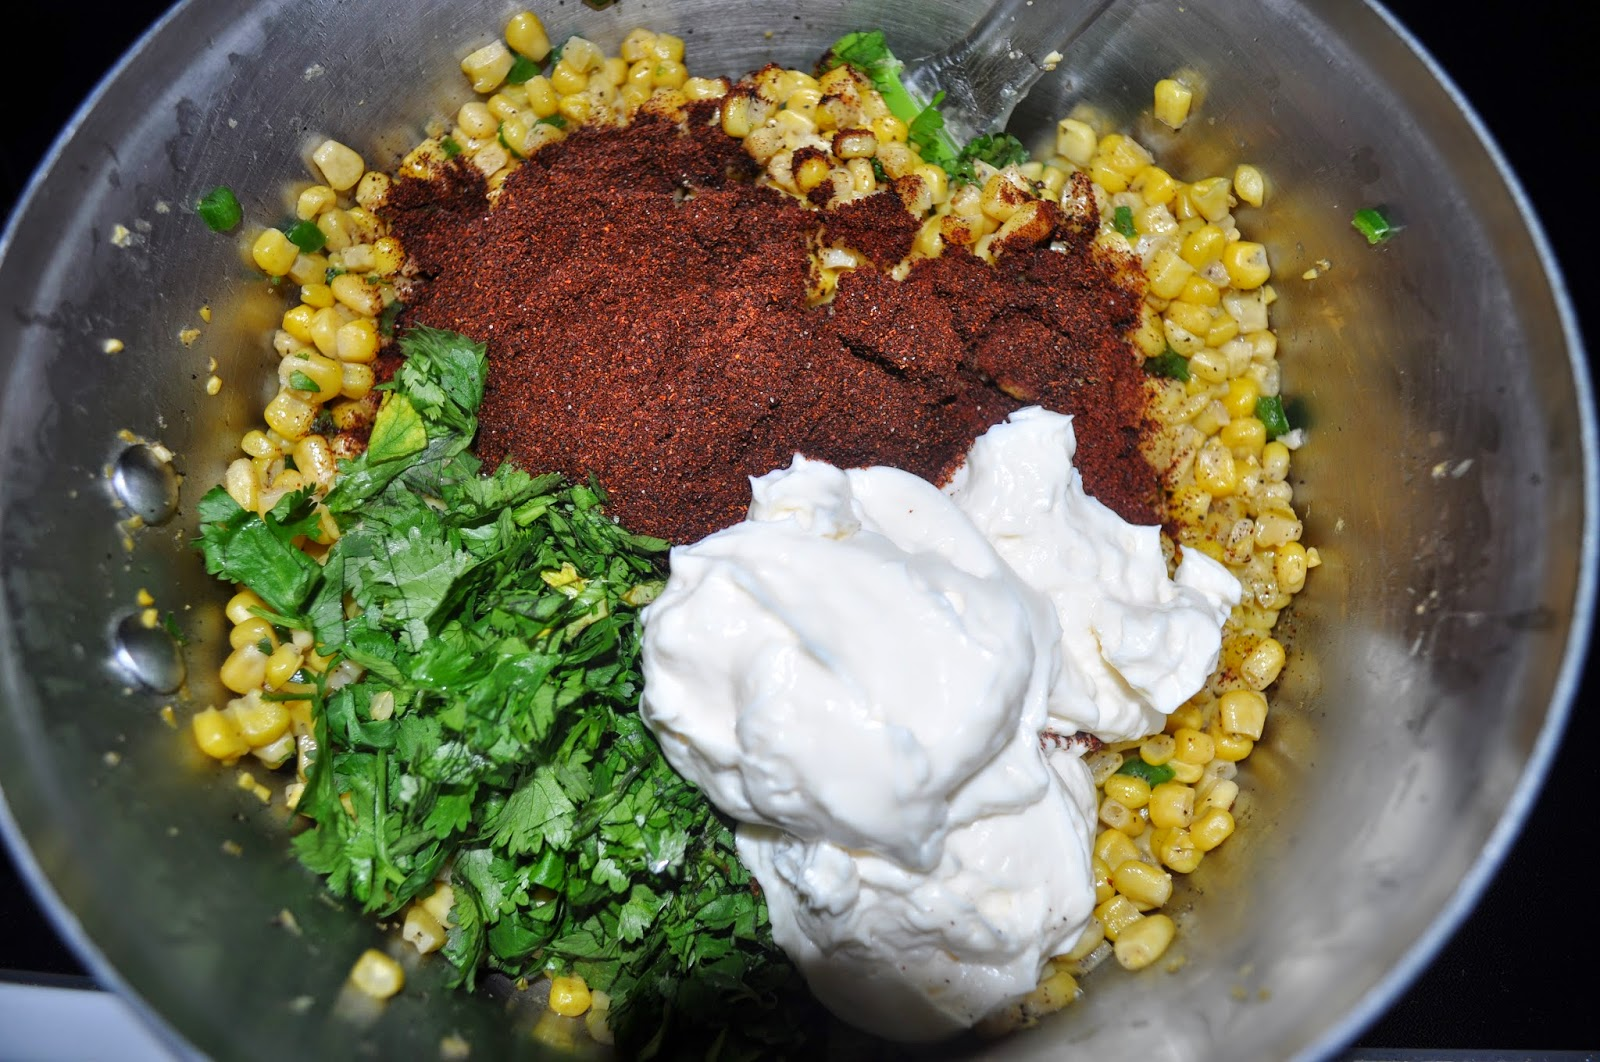 cilantro, corn, salad, goat cheese, mayo, chili, chili powder, lime, mexican corn salad, side dish, party, food, tasty, yummy, jalopeno, pepper, recipes, ingrediants